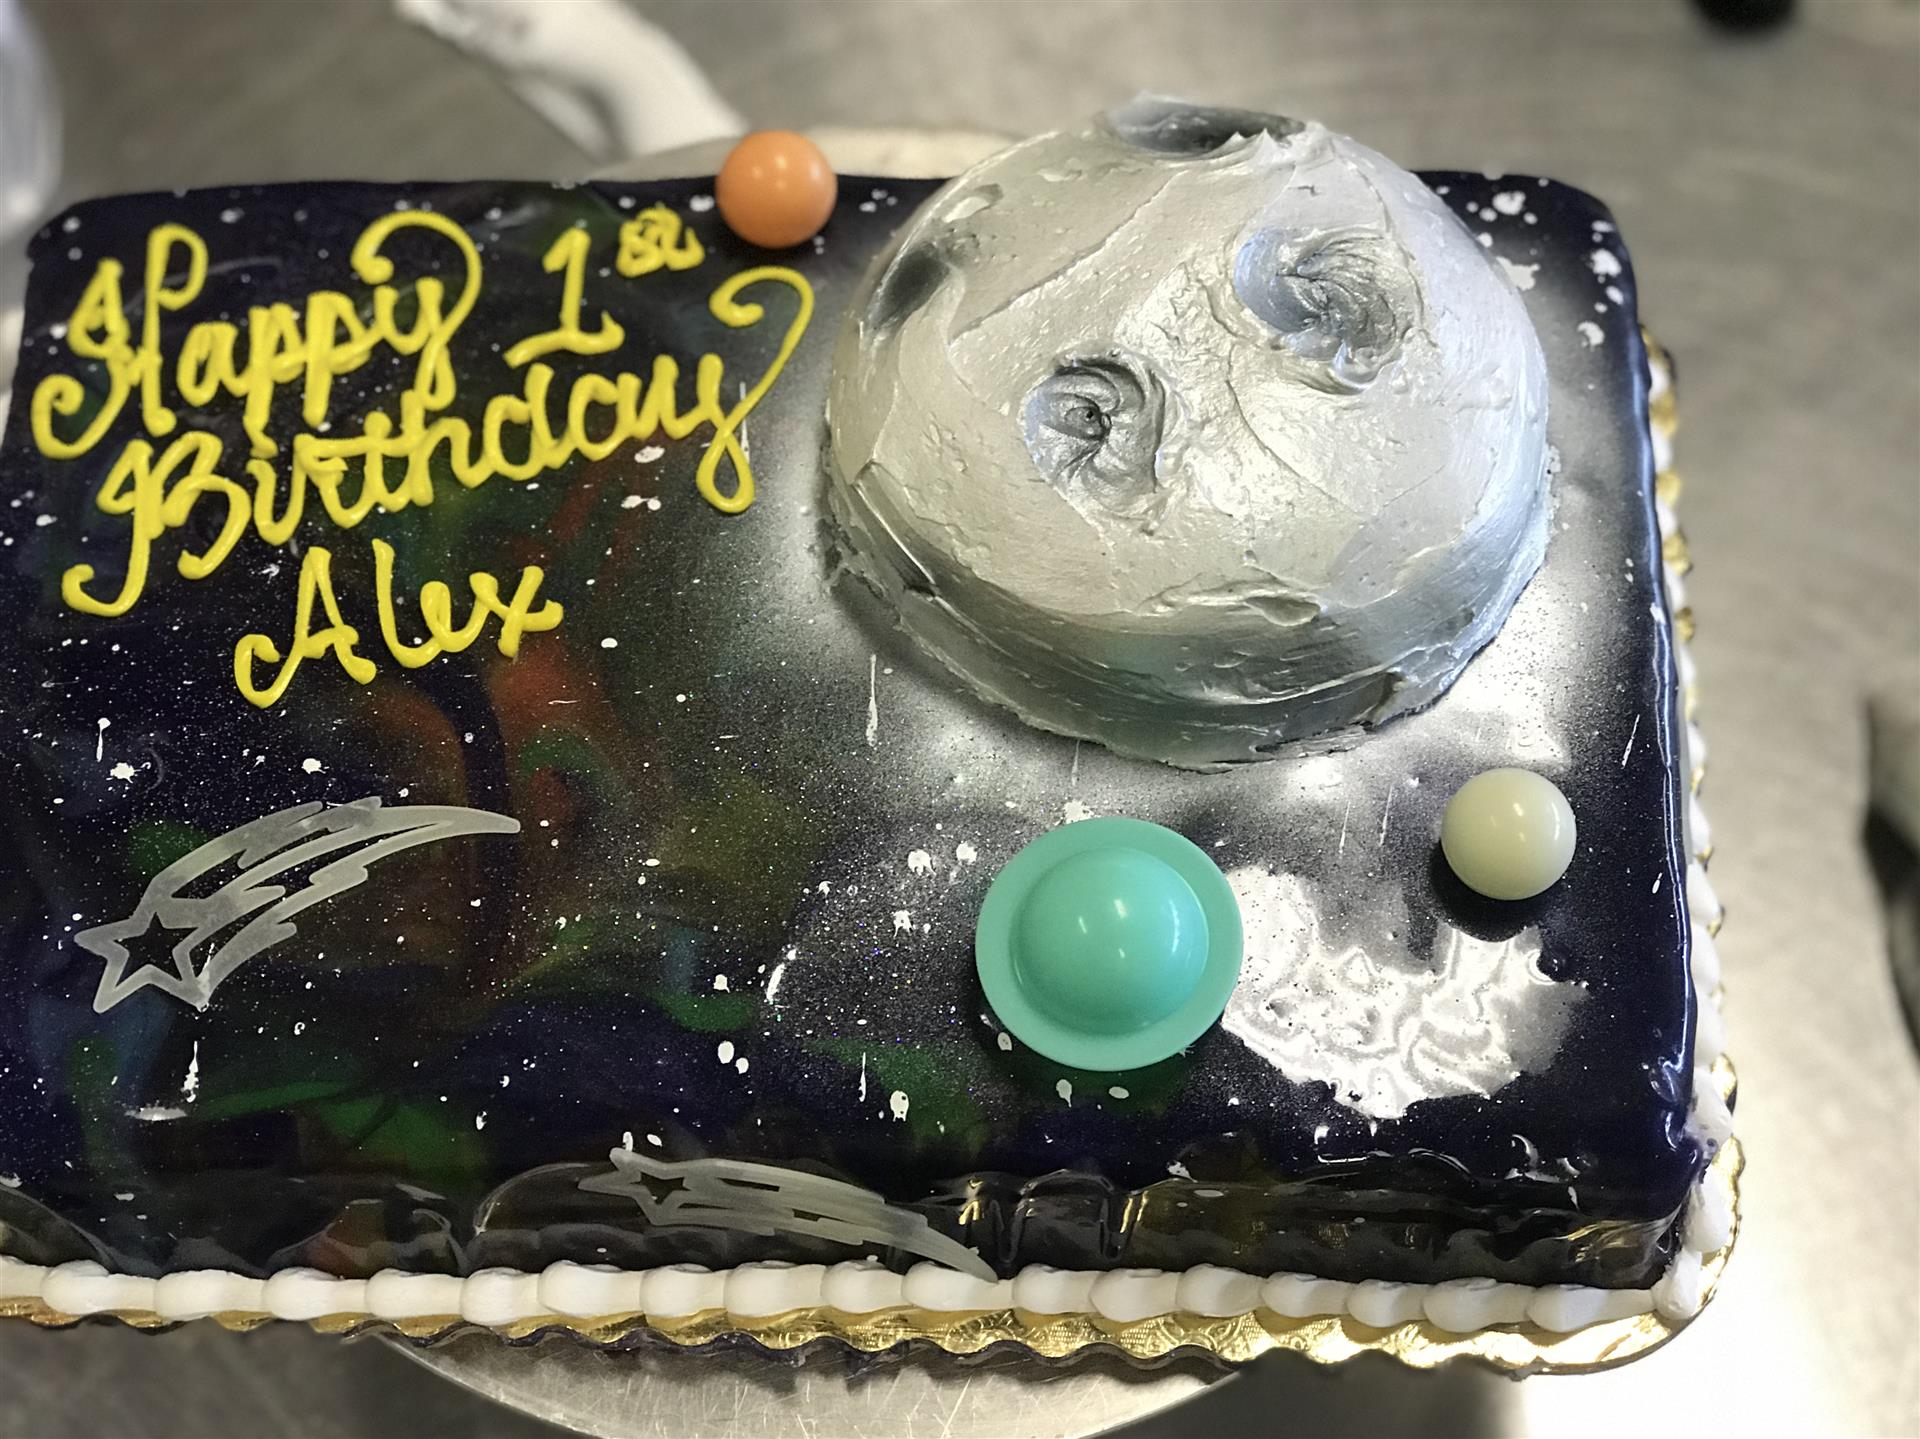 a space themed sheet cake